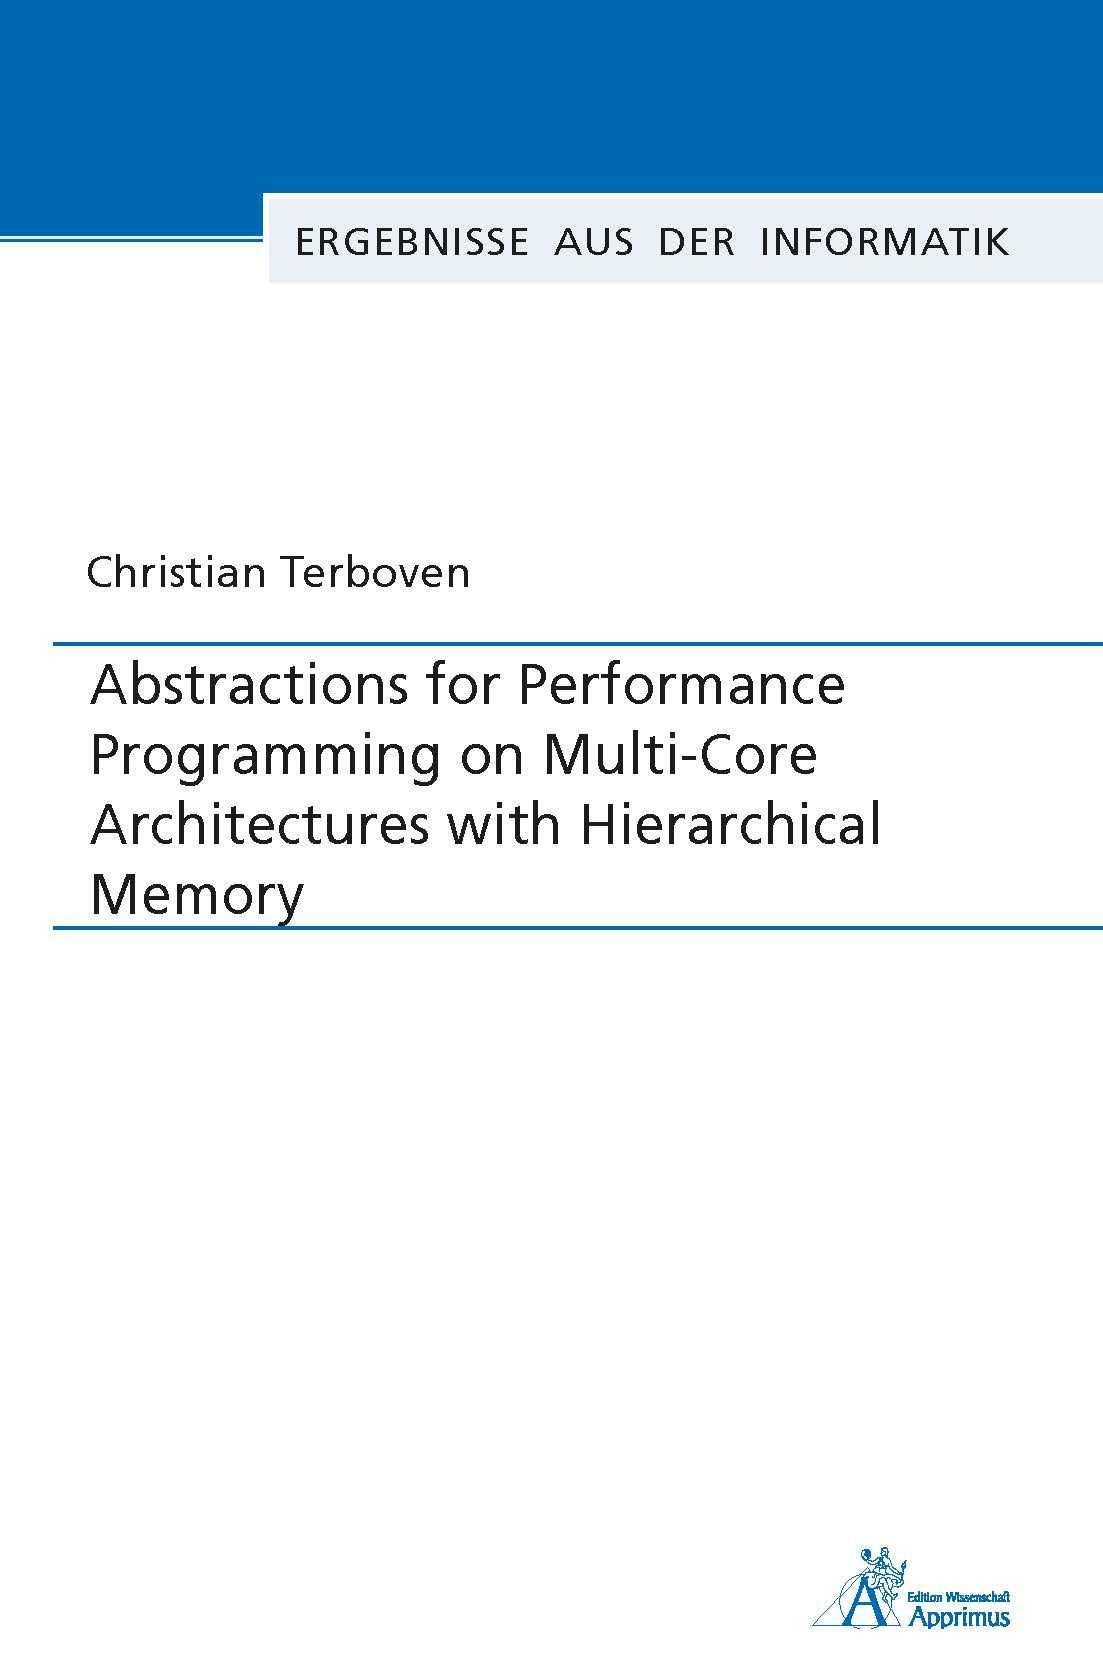 Abstractions for Performance Programming on Multi-Core Architectures with Hierarchical Memory